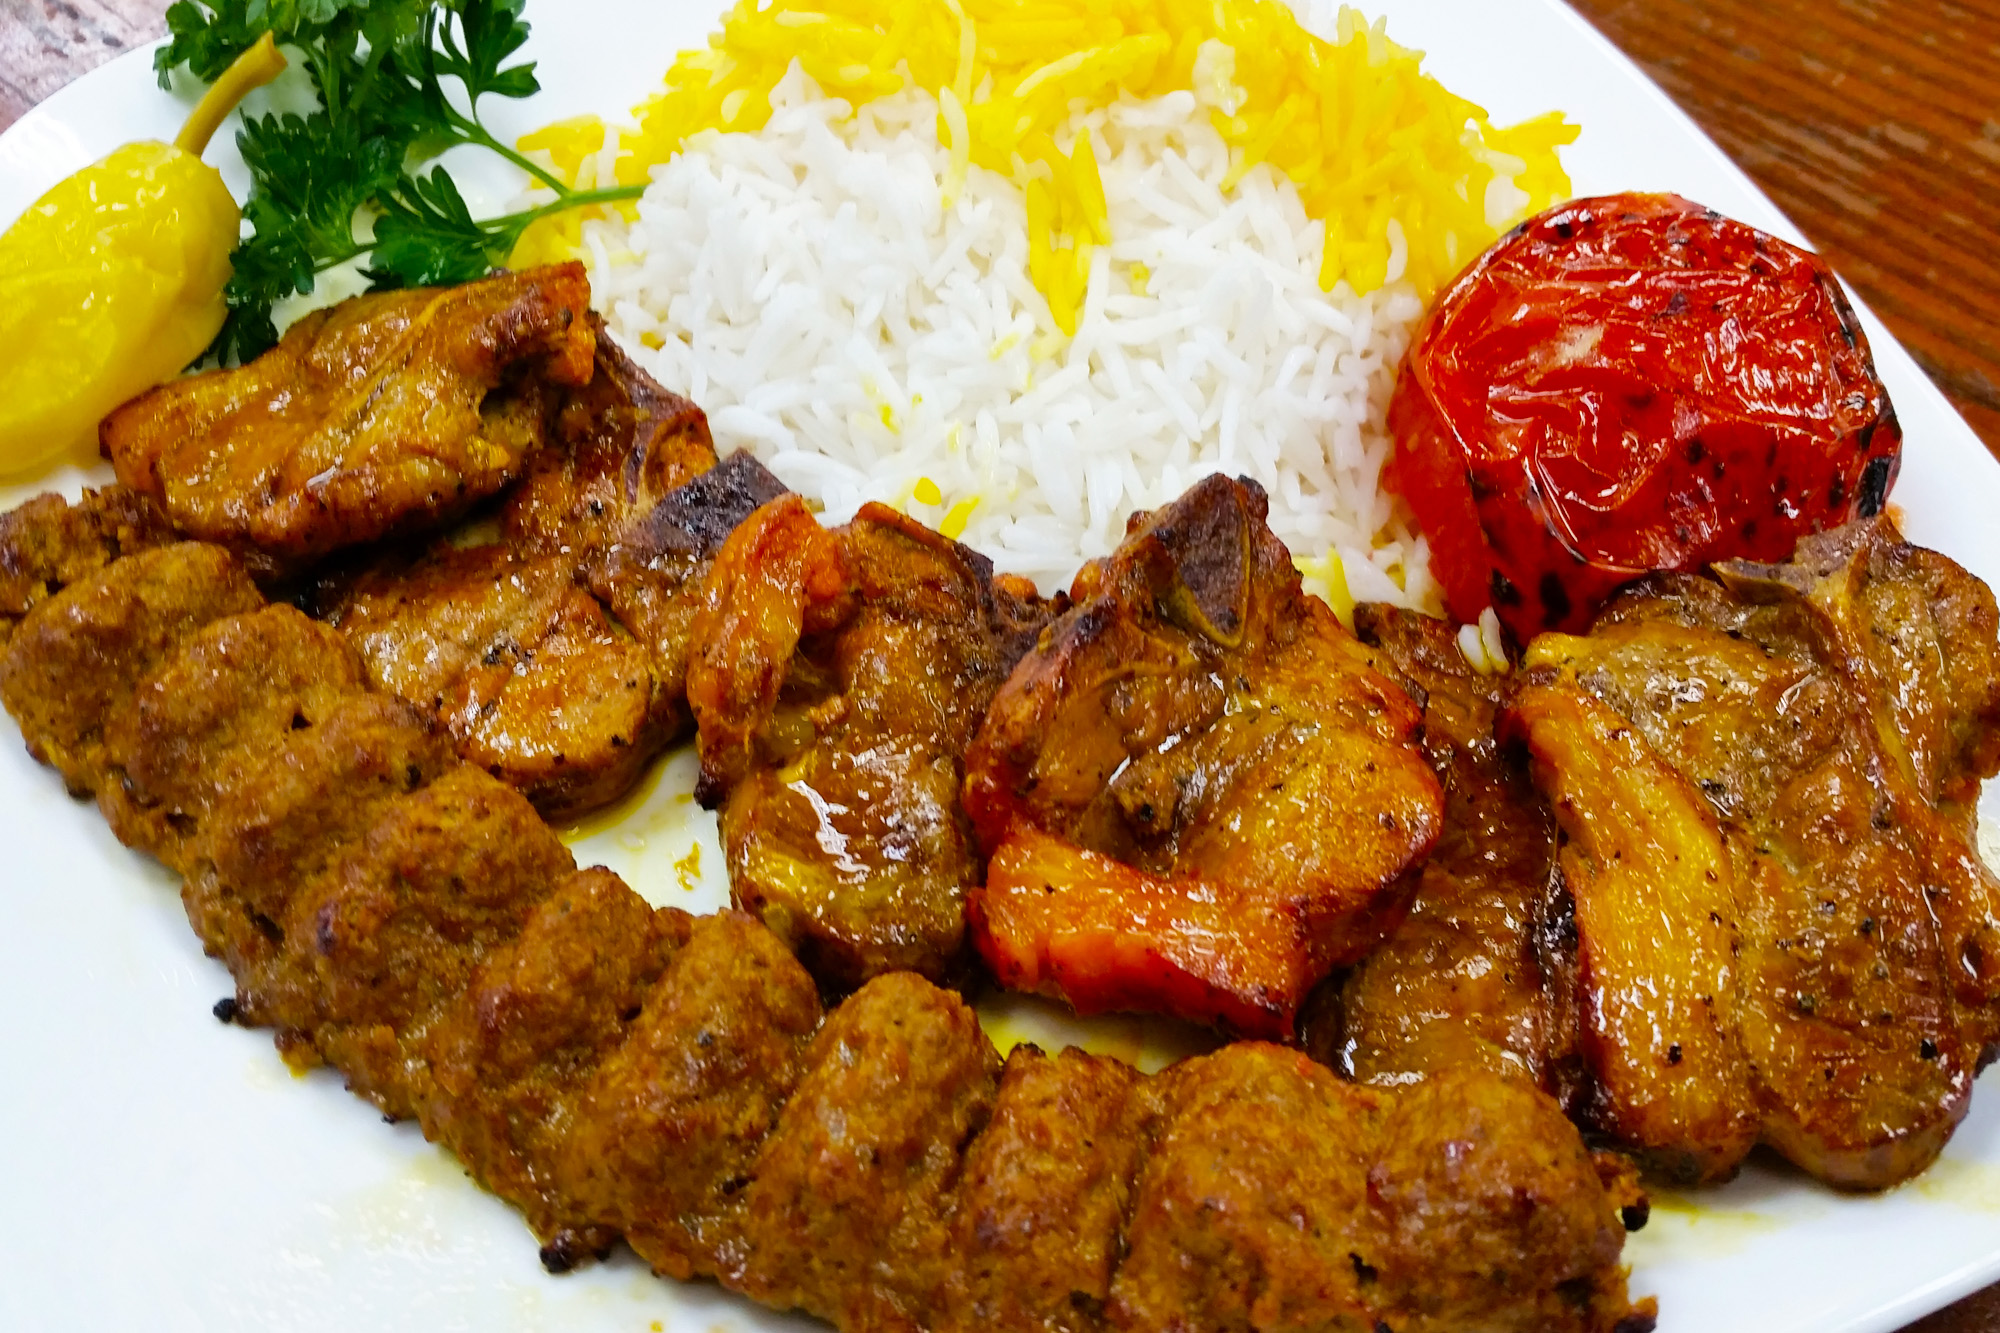 Lamb Soltani = Lamb loin chops and one ground beef skewer with rice at Sahel Persian Restaurant